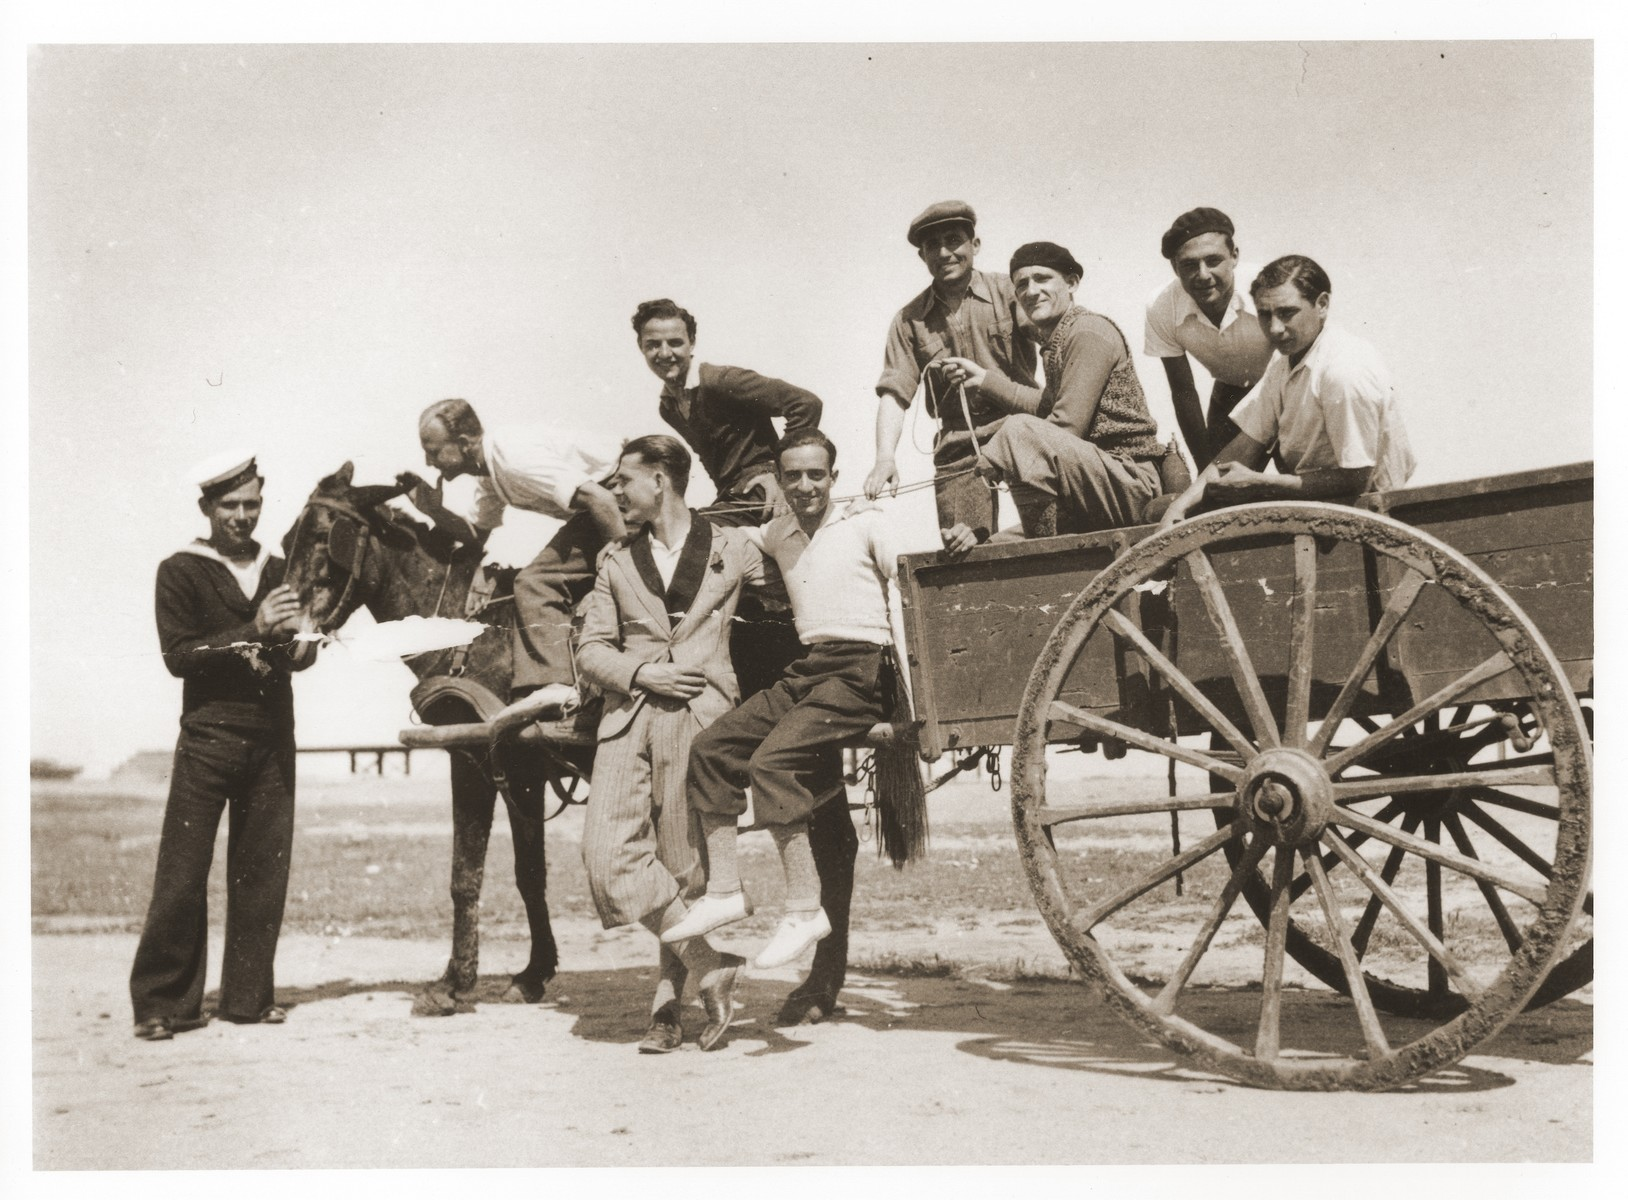 Sam Rouben (in the white shirt) poses with a group of friends on a horse-drawn wagon.